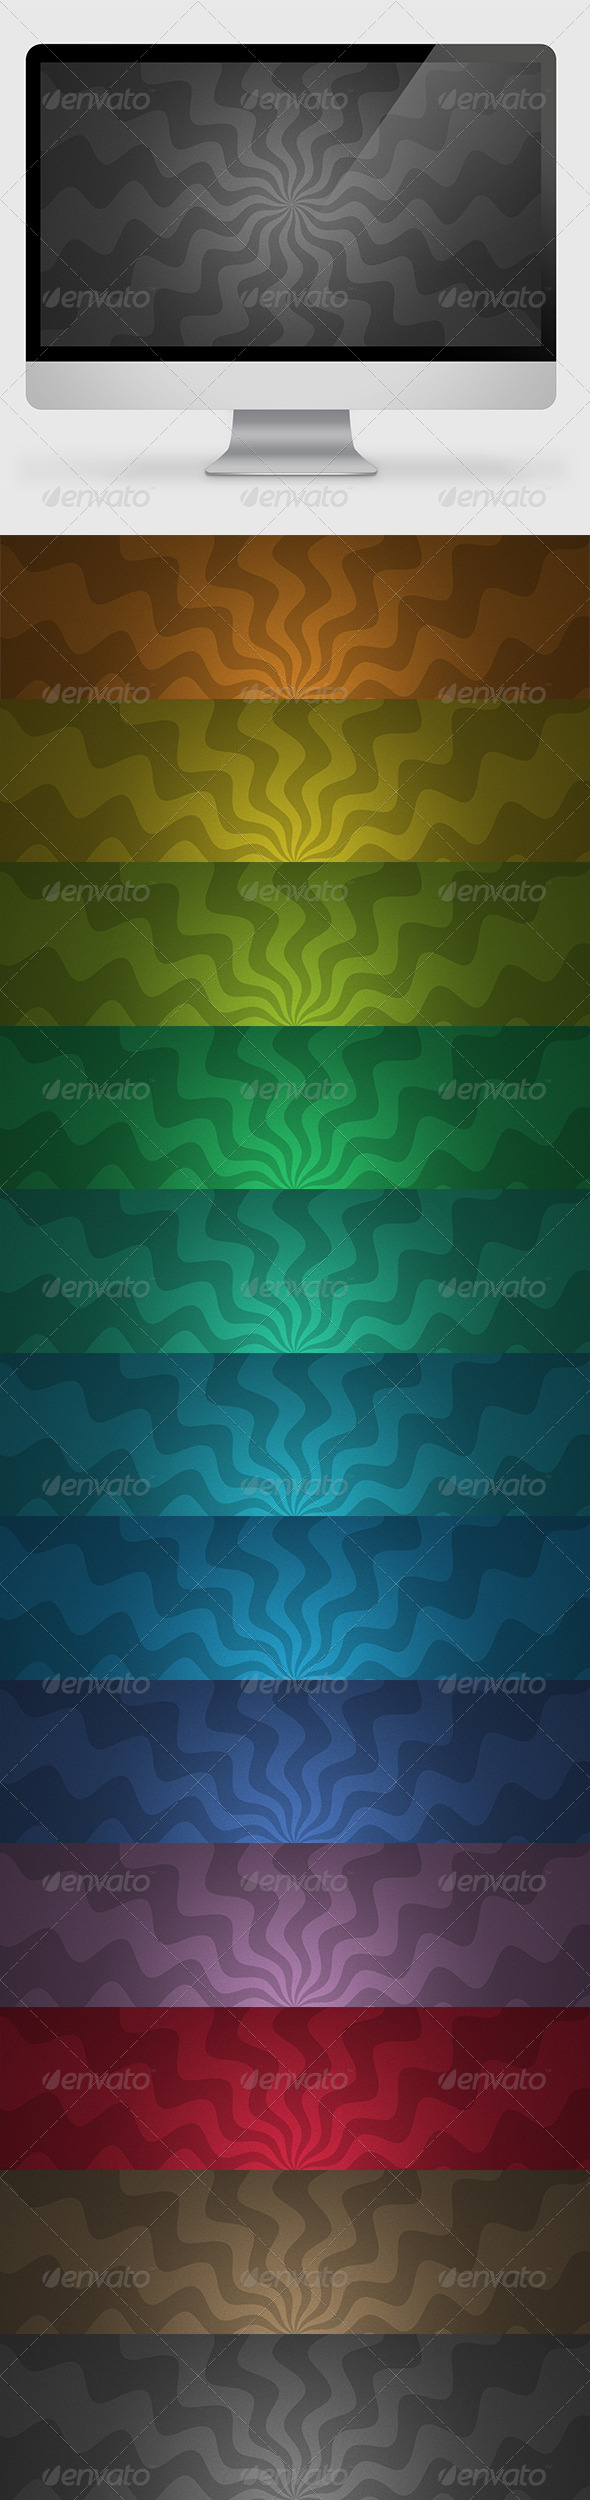 GraphicRiver Rays Backgrounds Wallpapers 2 7161760